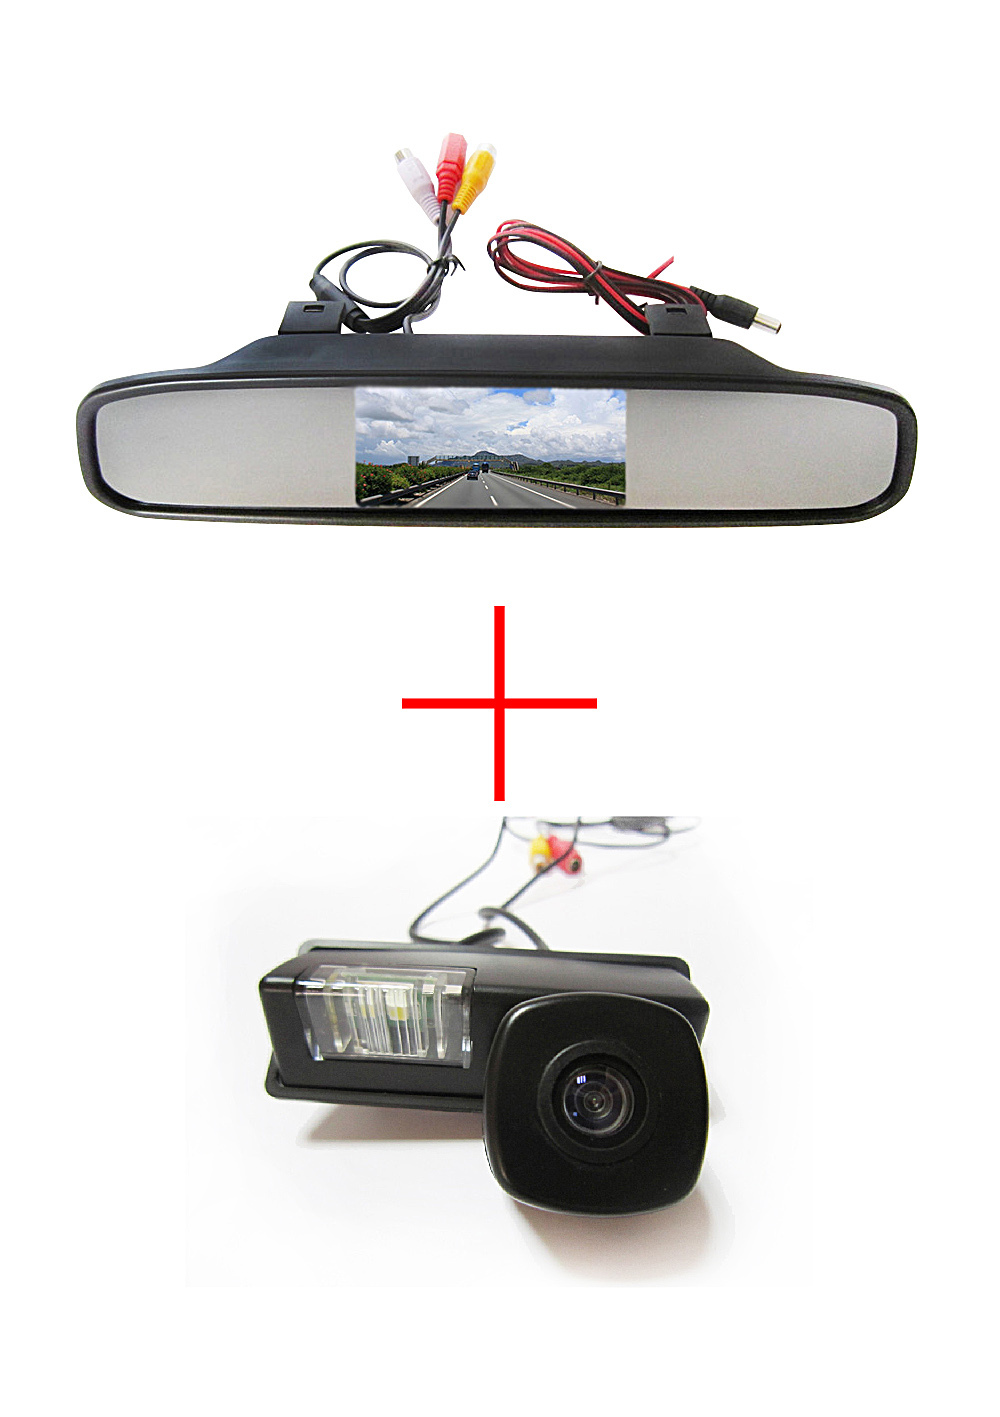 Color CCD Chip Car Rear View Camera Nissan Maxima Cefiro Teana Paladin Tiida Sylphy + 4.3 Inch rearview Mirror Monitor - Fuway HK Trading Co., Ltd store